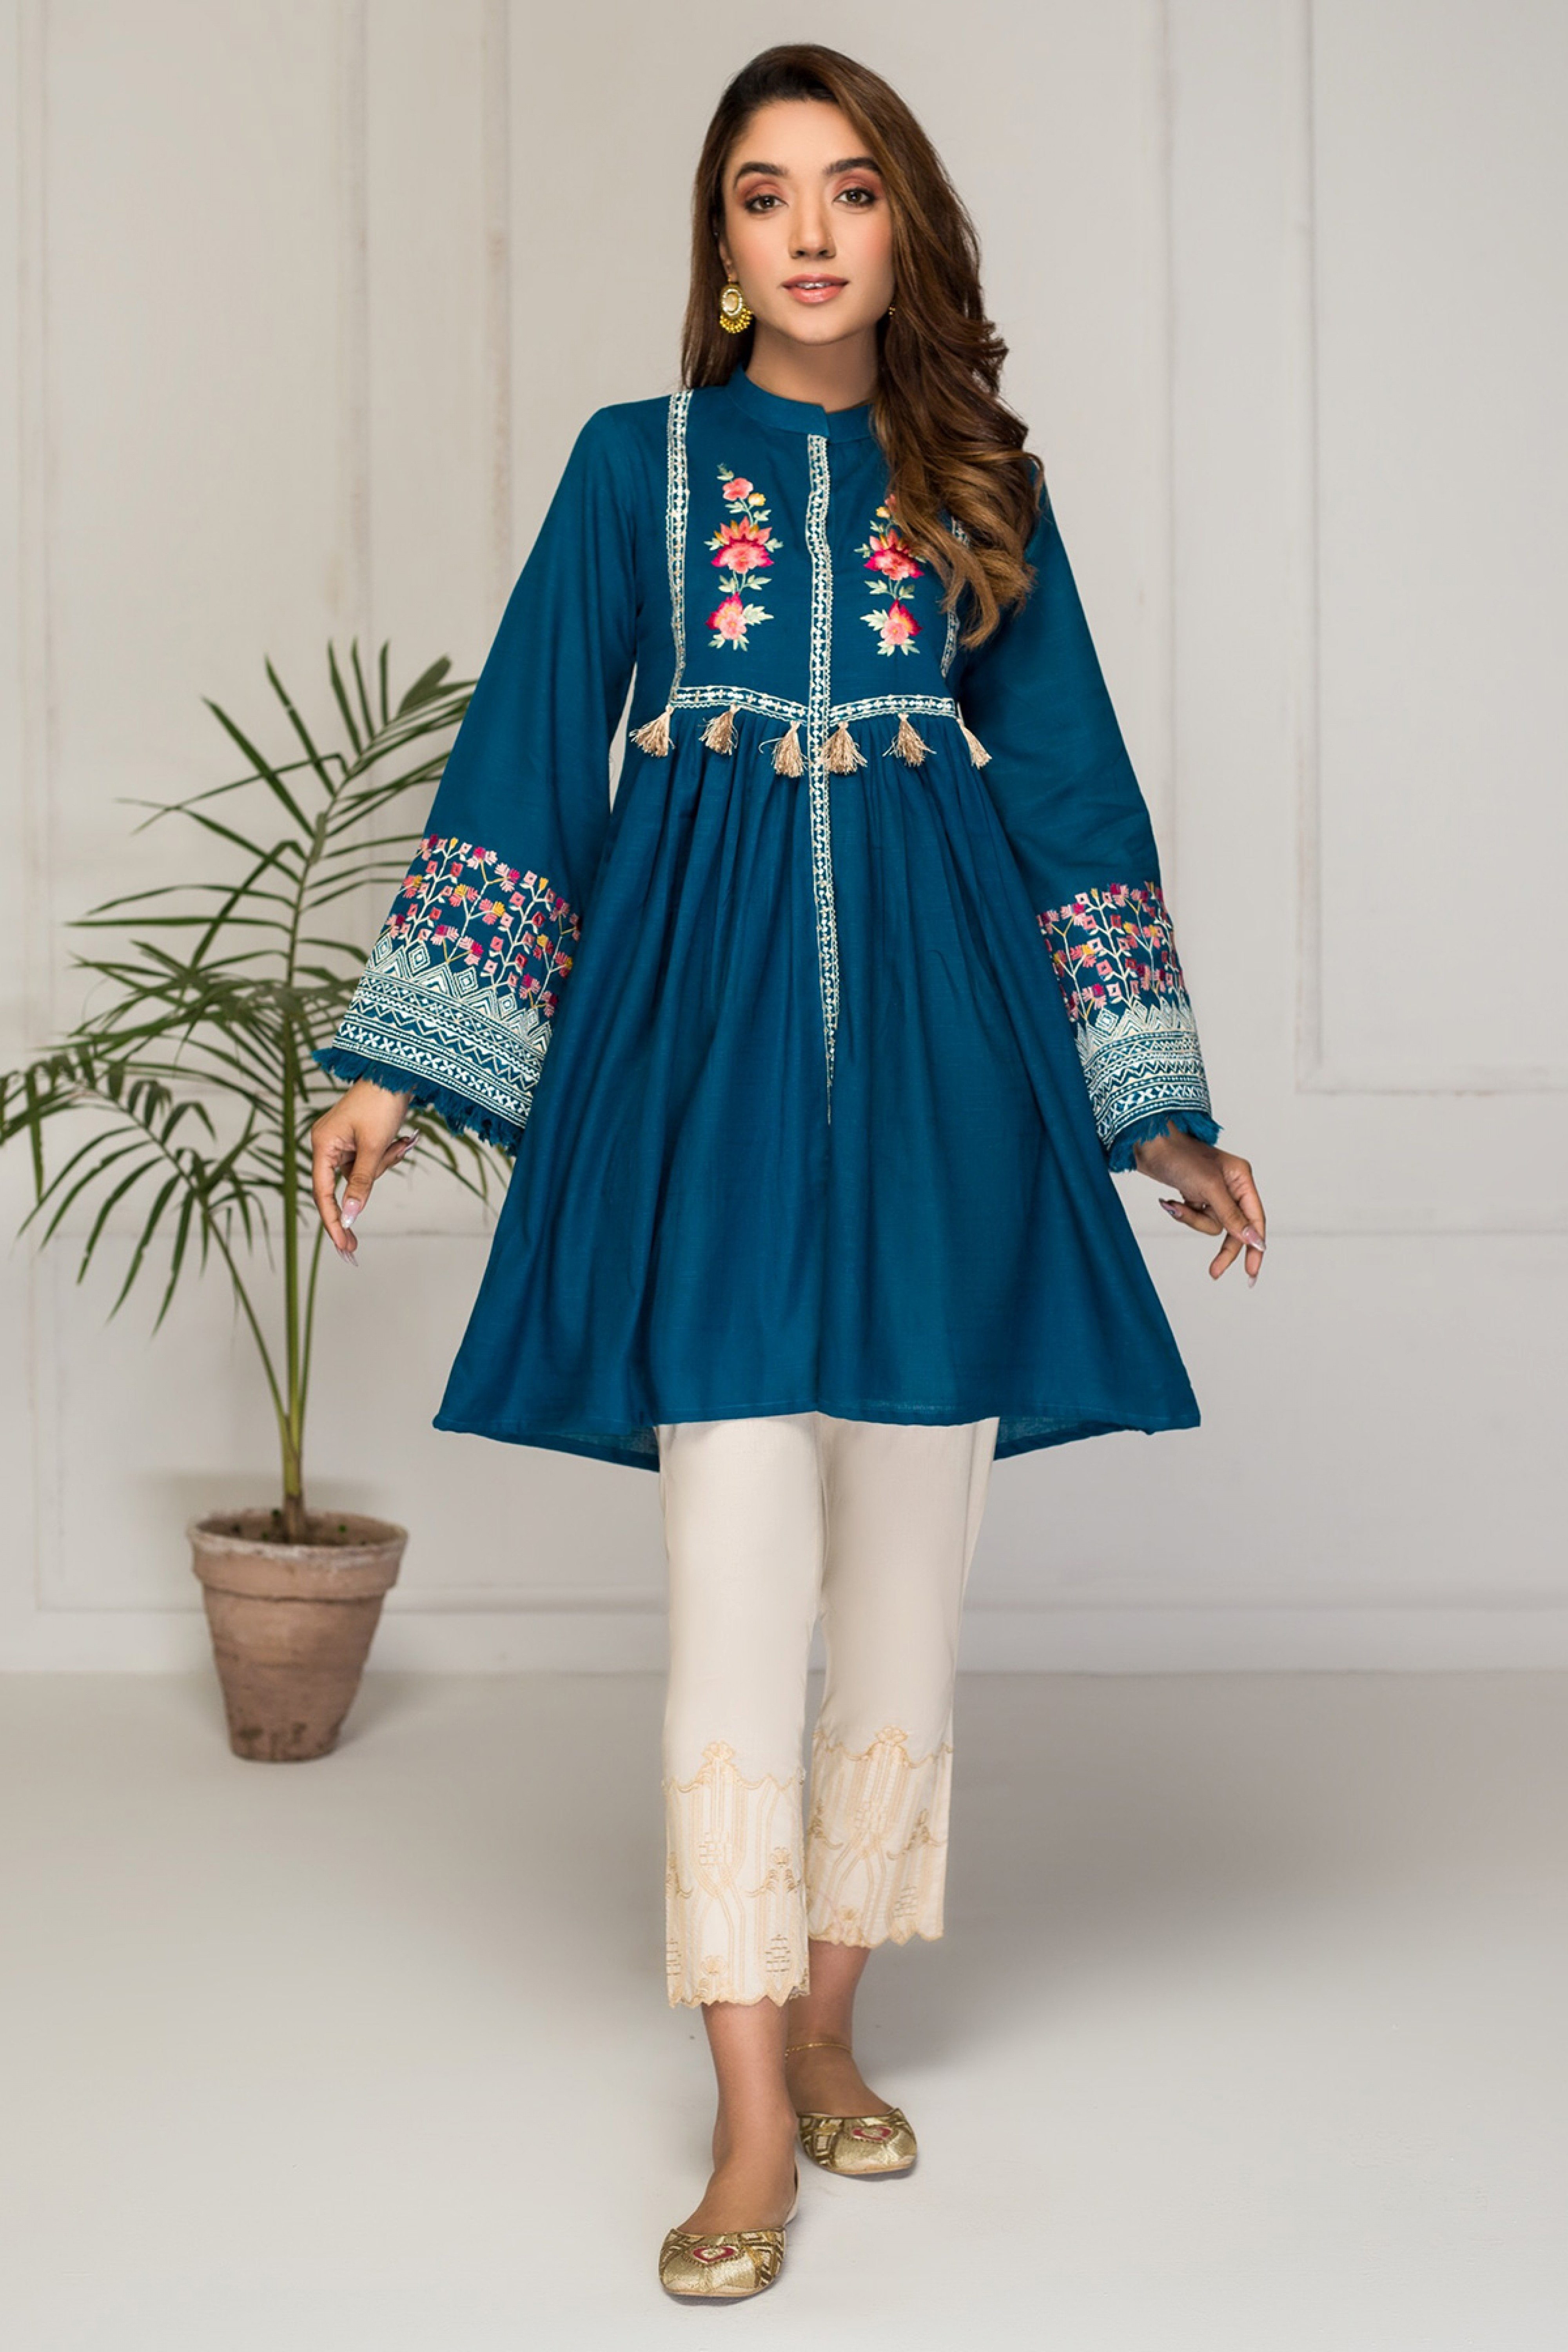 MARINA MIST(Embroidered Frock)